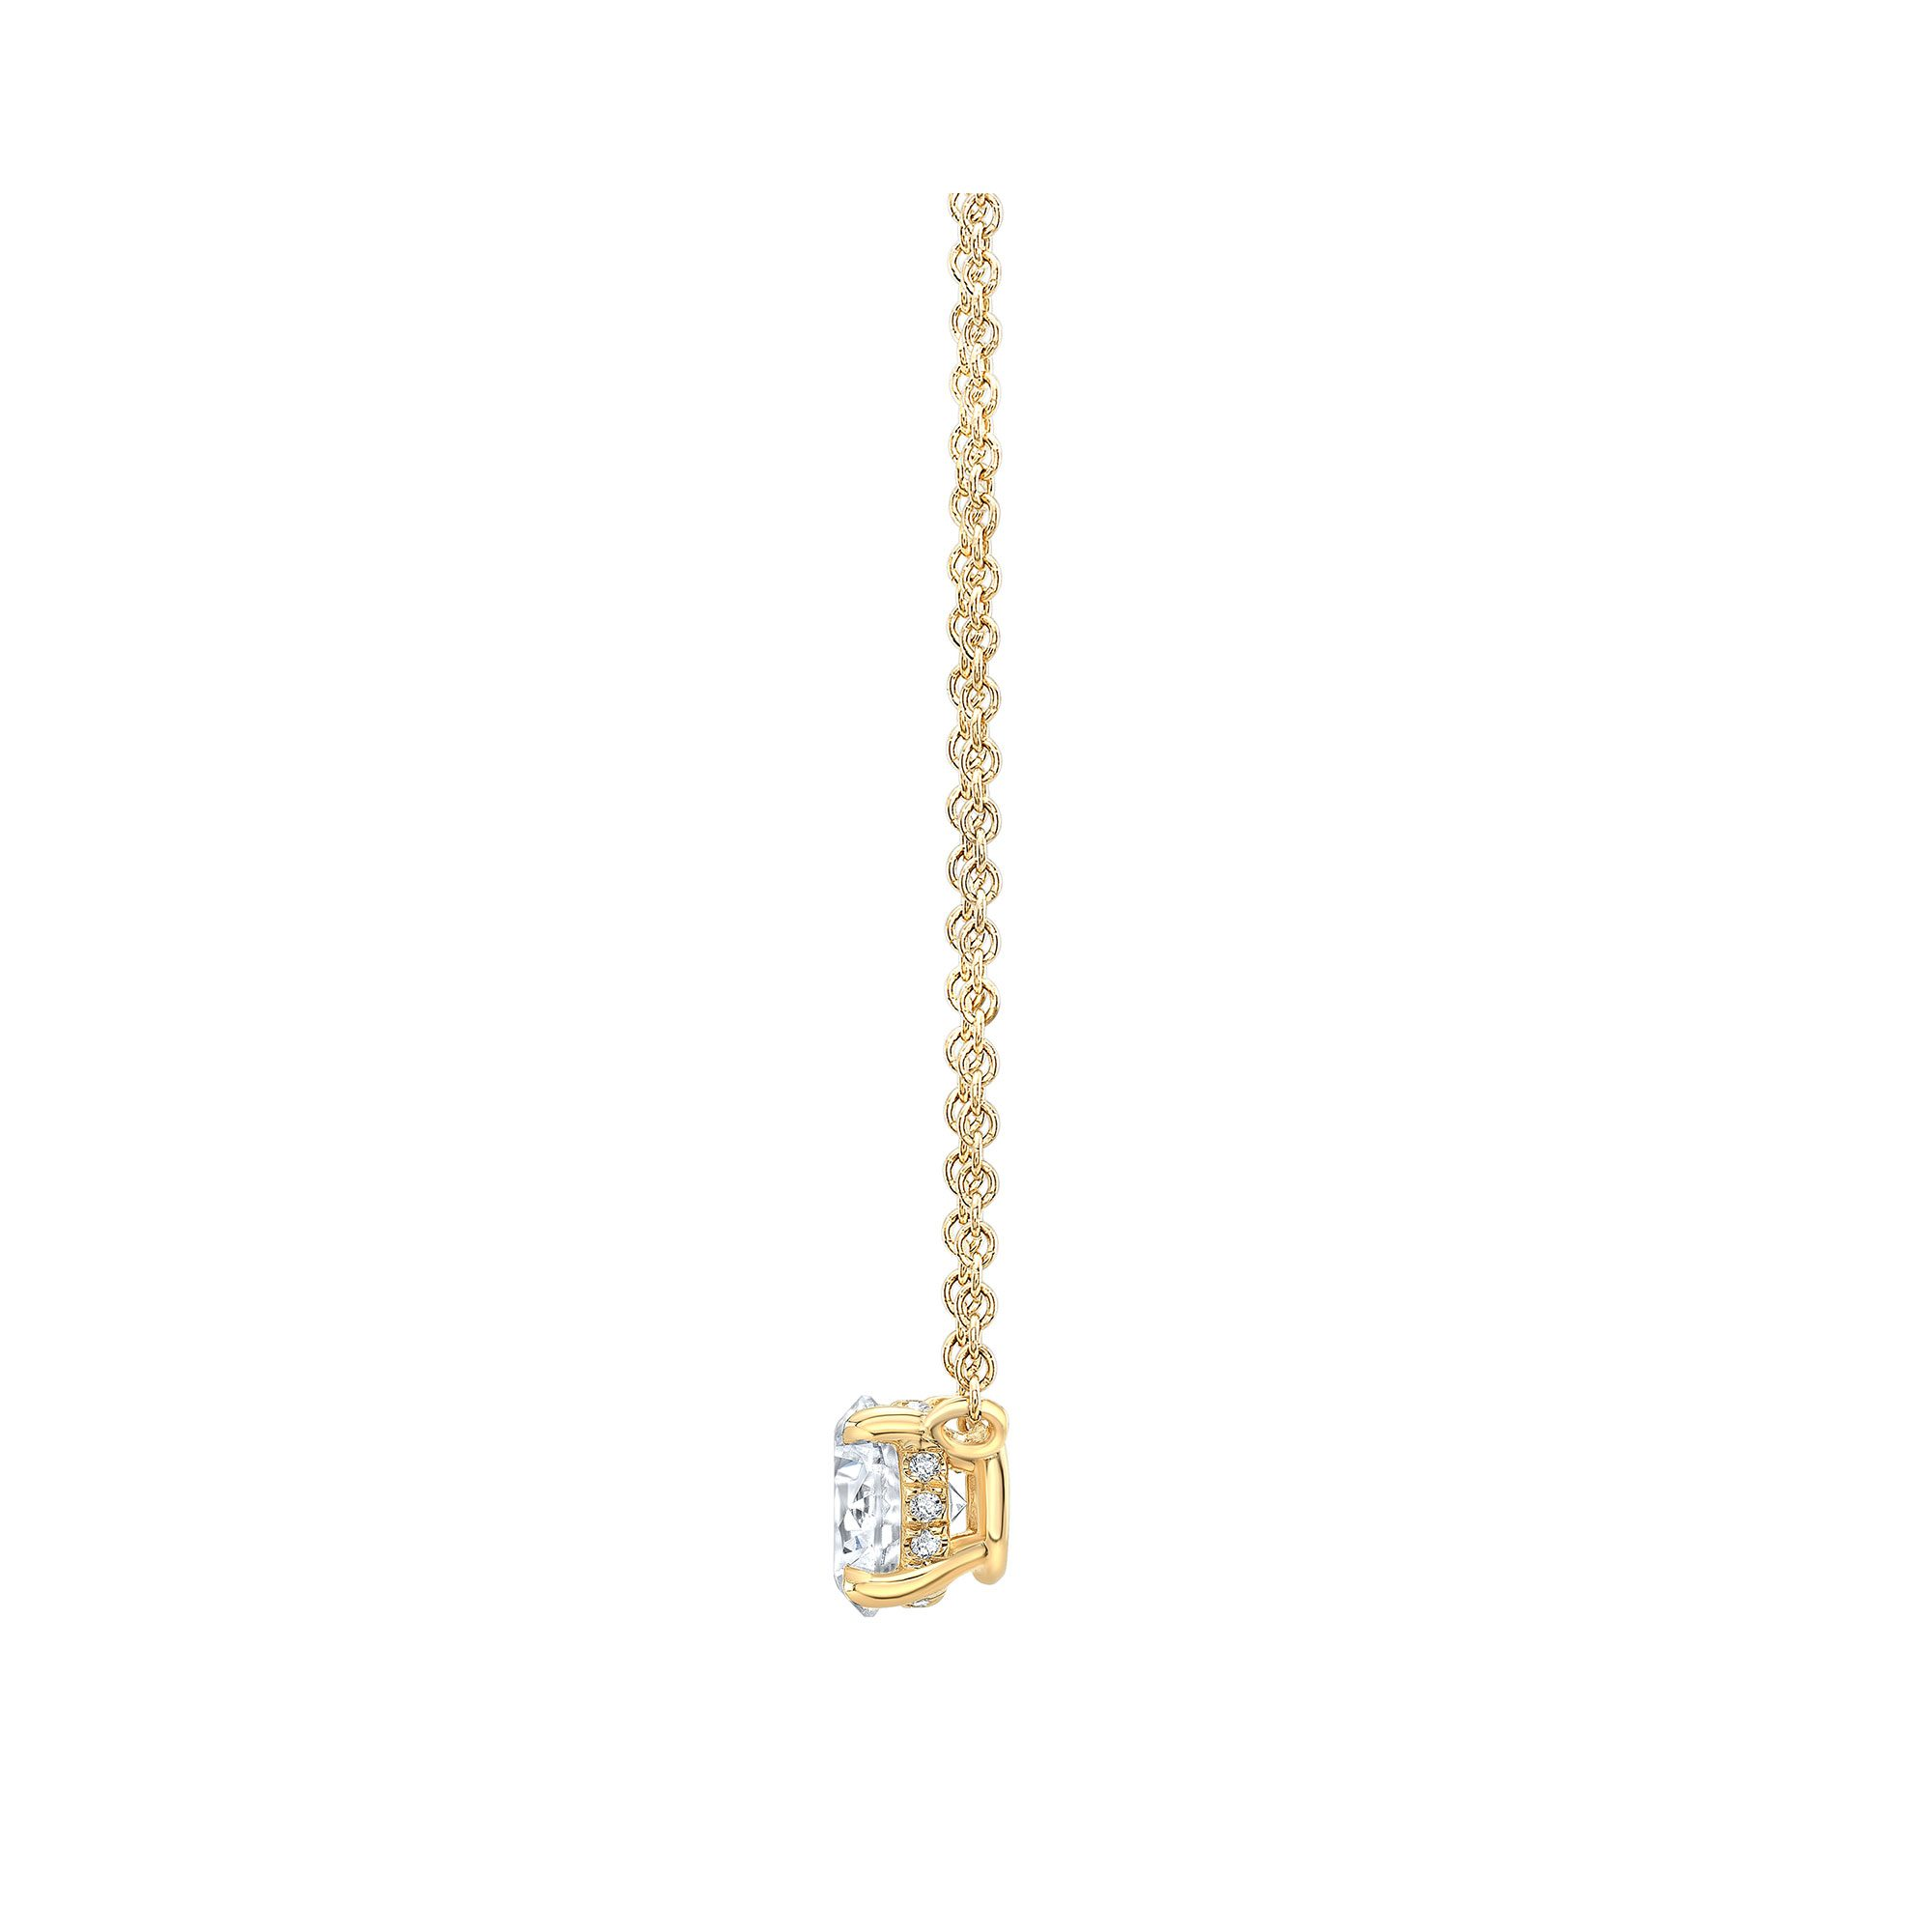 Marie Round Brilliant 1 Carat Lab Grown Diamond Necklace Side View in Yellow Gold